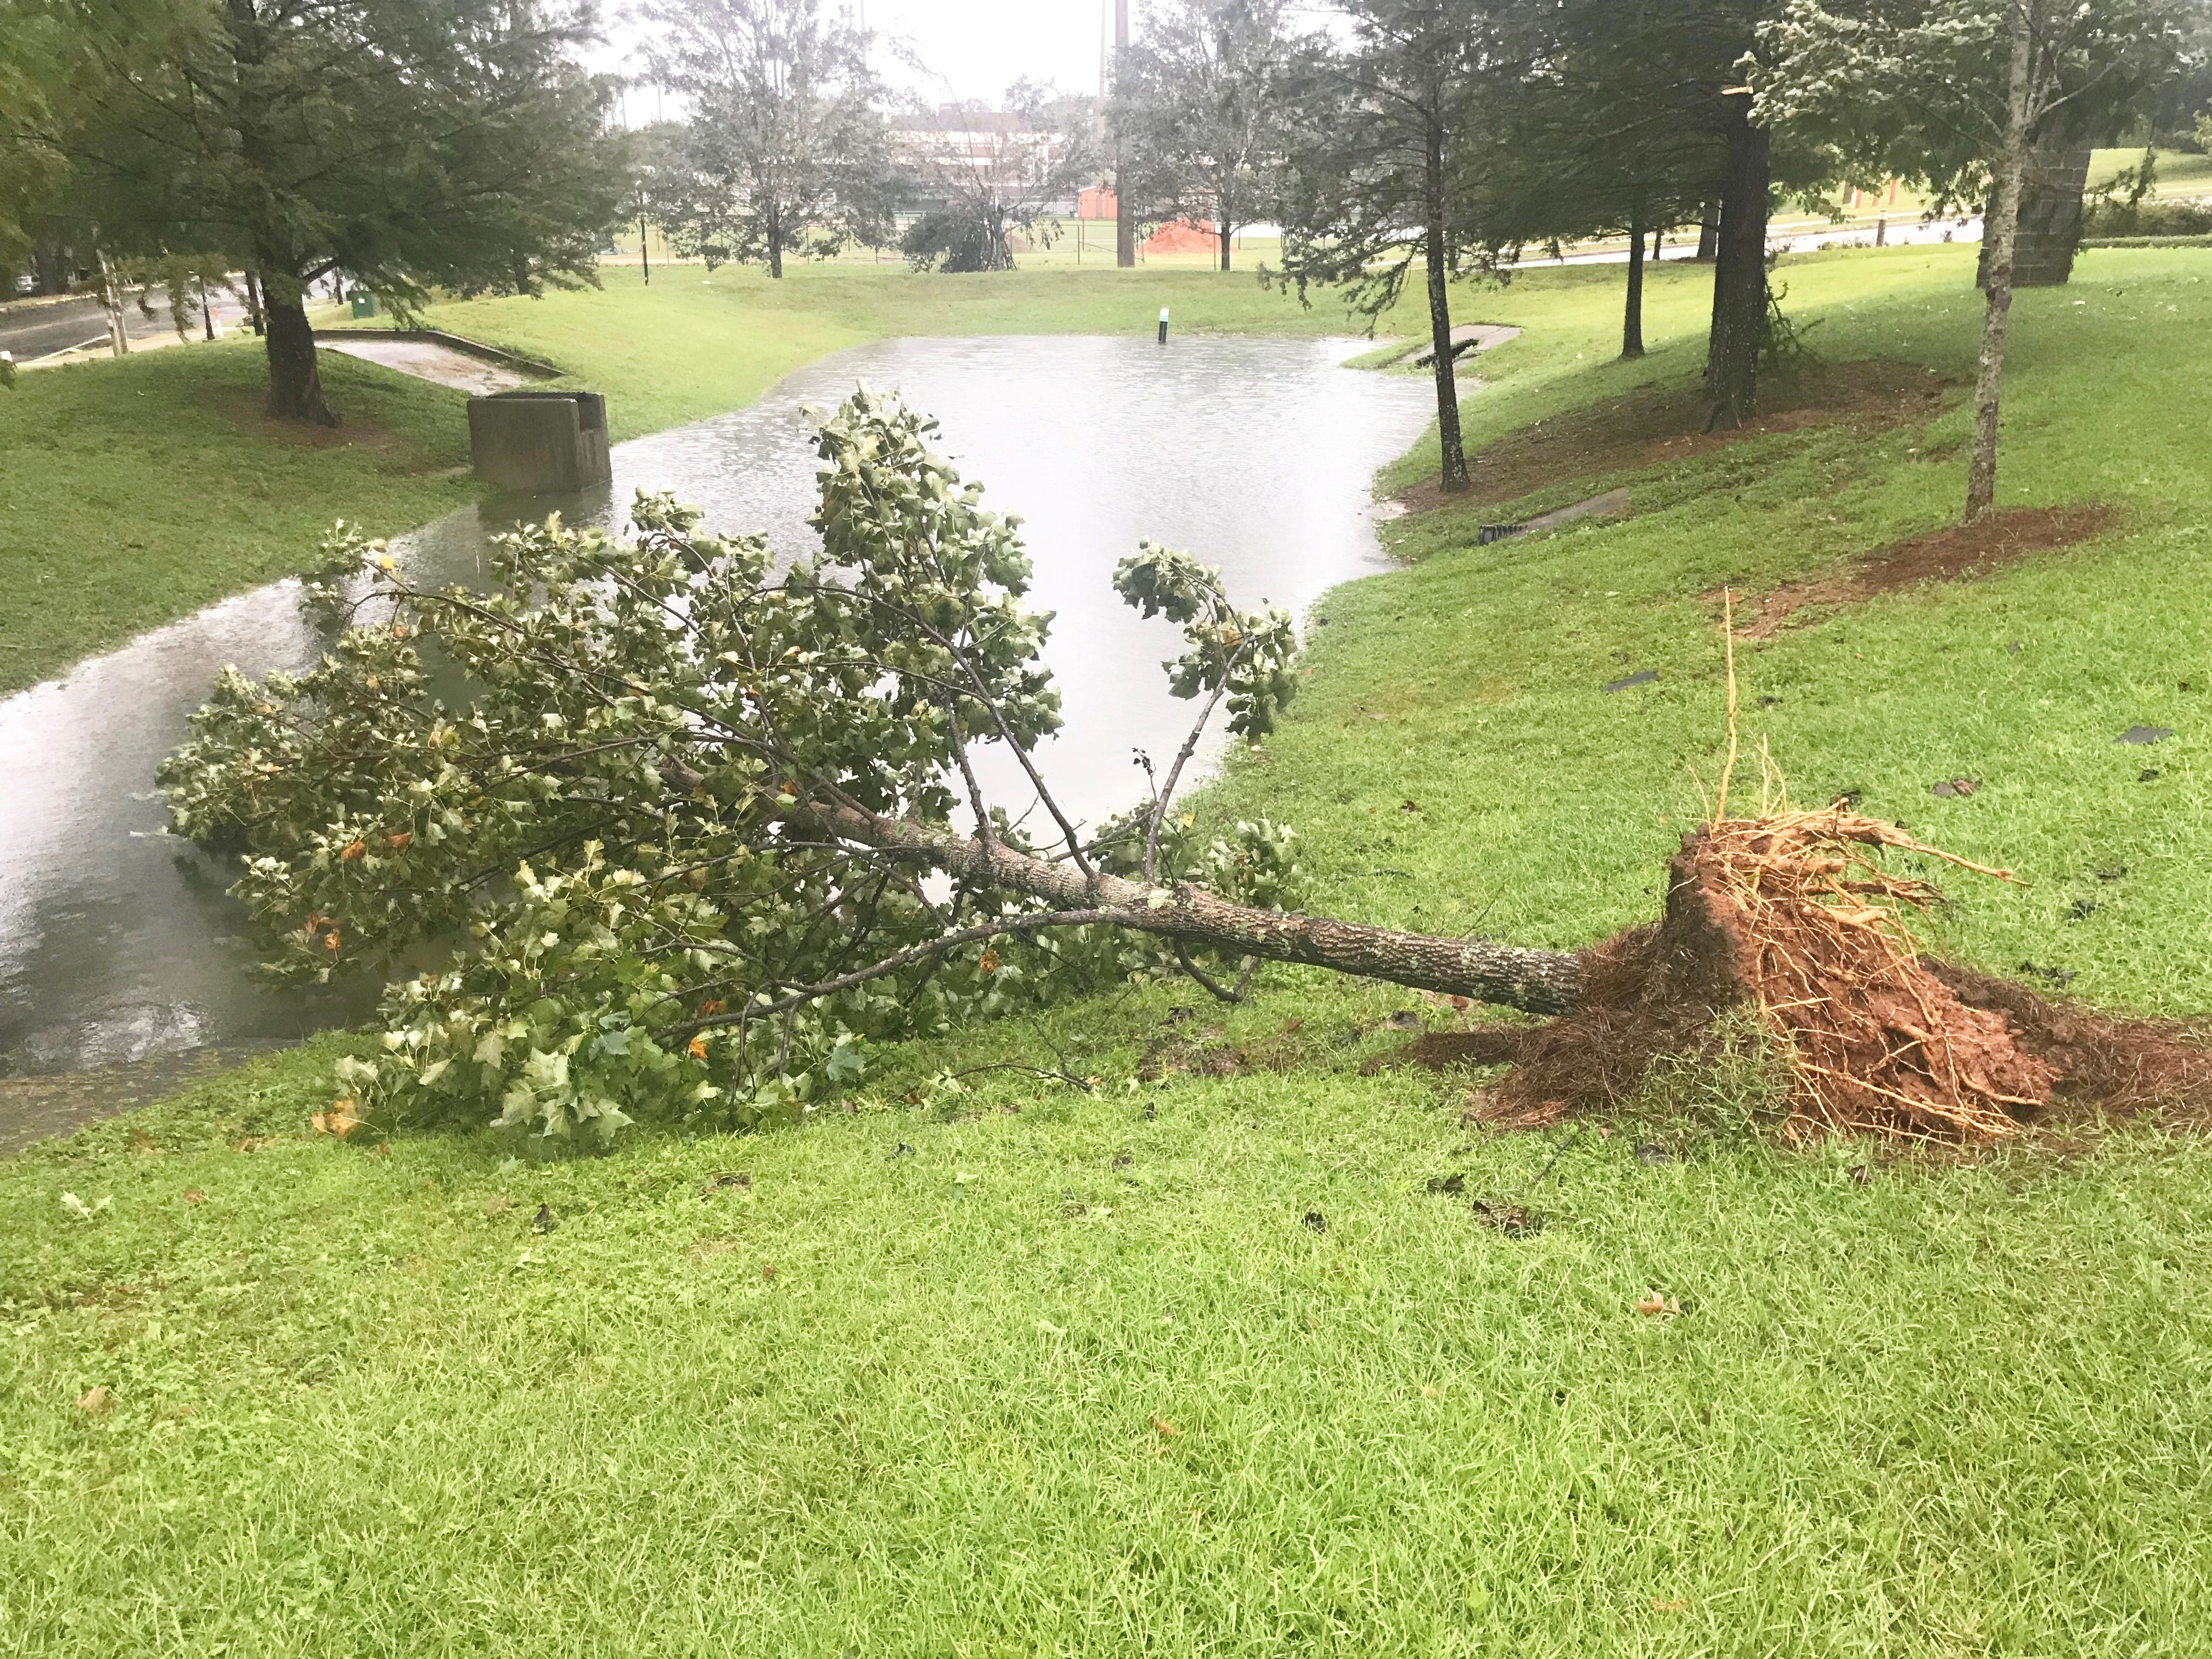 Hurricane Michael's strong winds knocked down this tree outside the Hansel E. Tookes, Sr. Student Center.